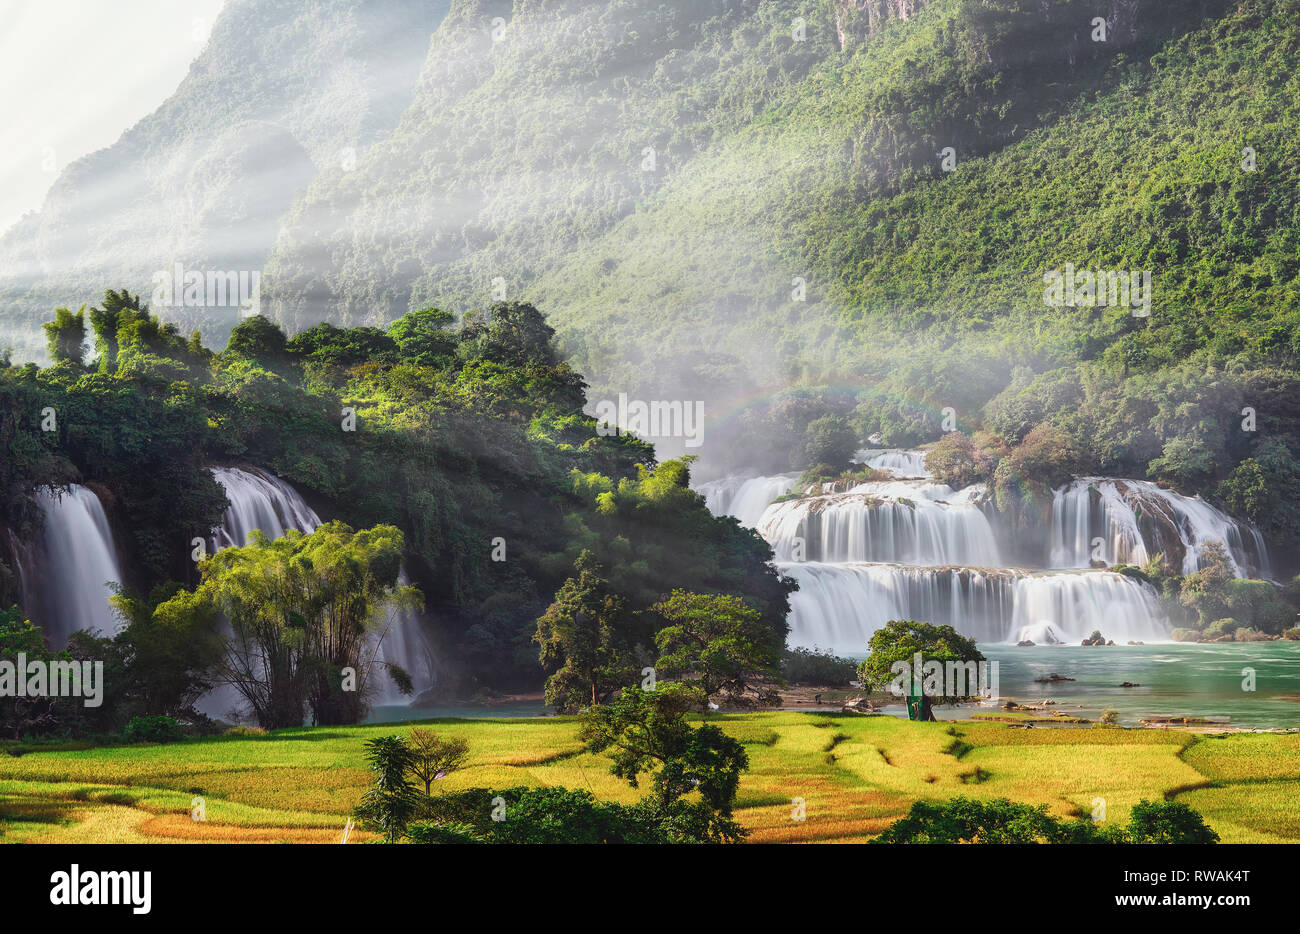 Aerial View Of Ban Gioc Waterfall Cao Bang Vietnam Ban Gioc Waterfall Is One Of The Top 10 Waterfalls In The World Stock Photo Alamy